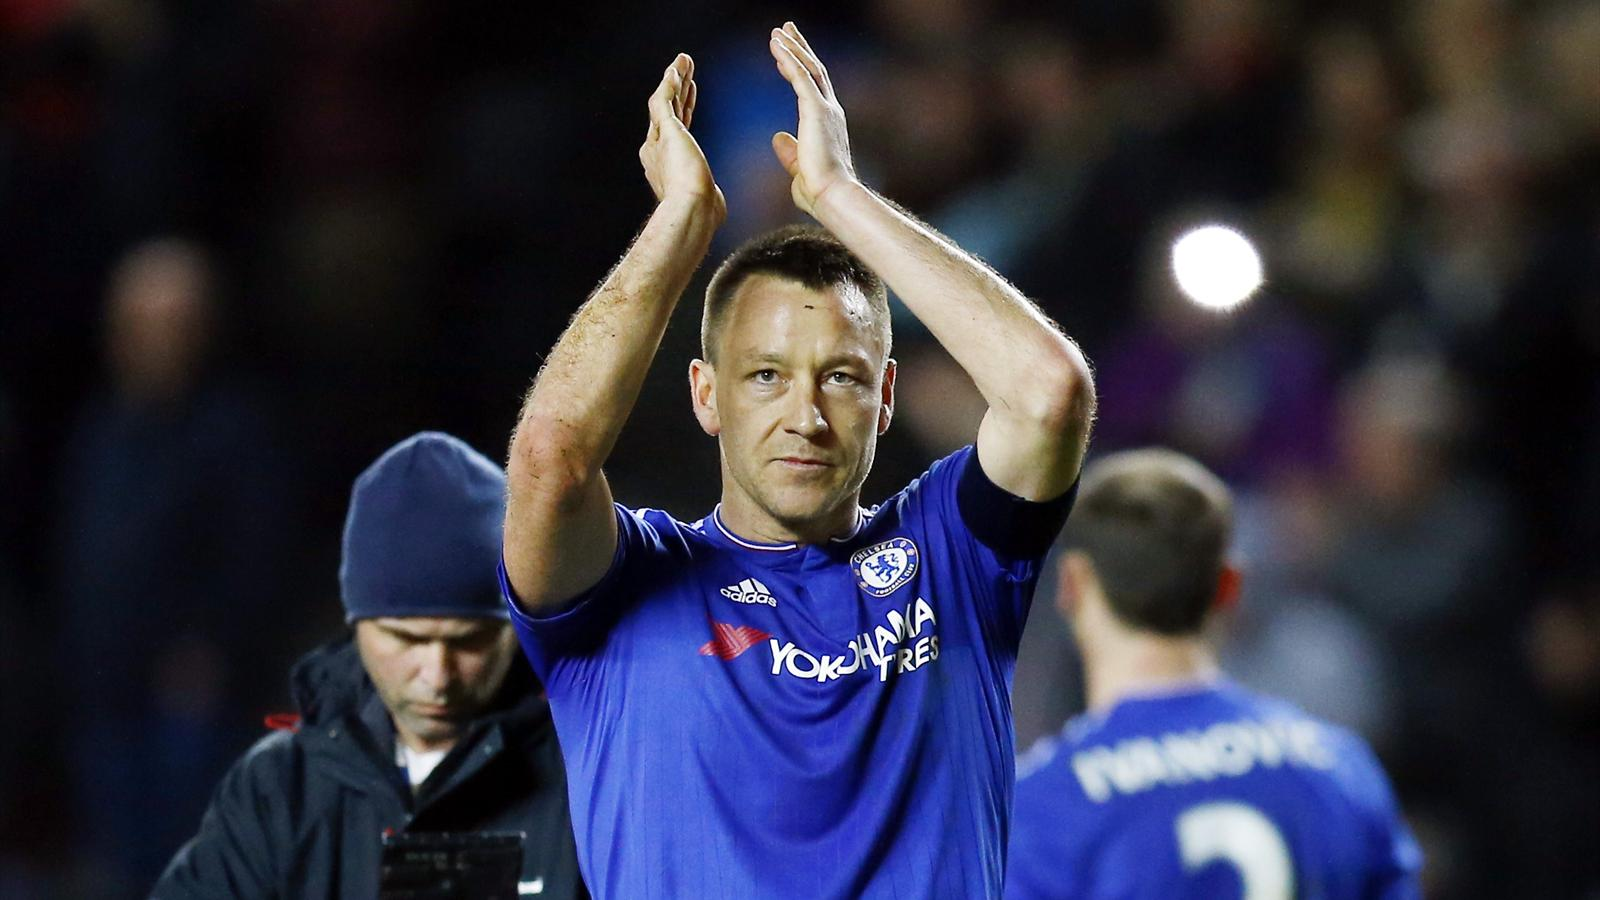 John Terry applauds the fans following Chelsea's win over MK Dons